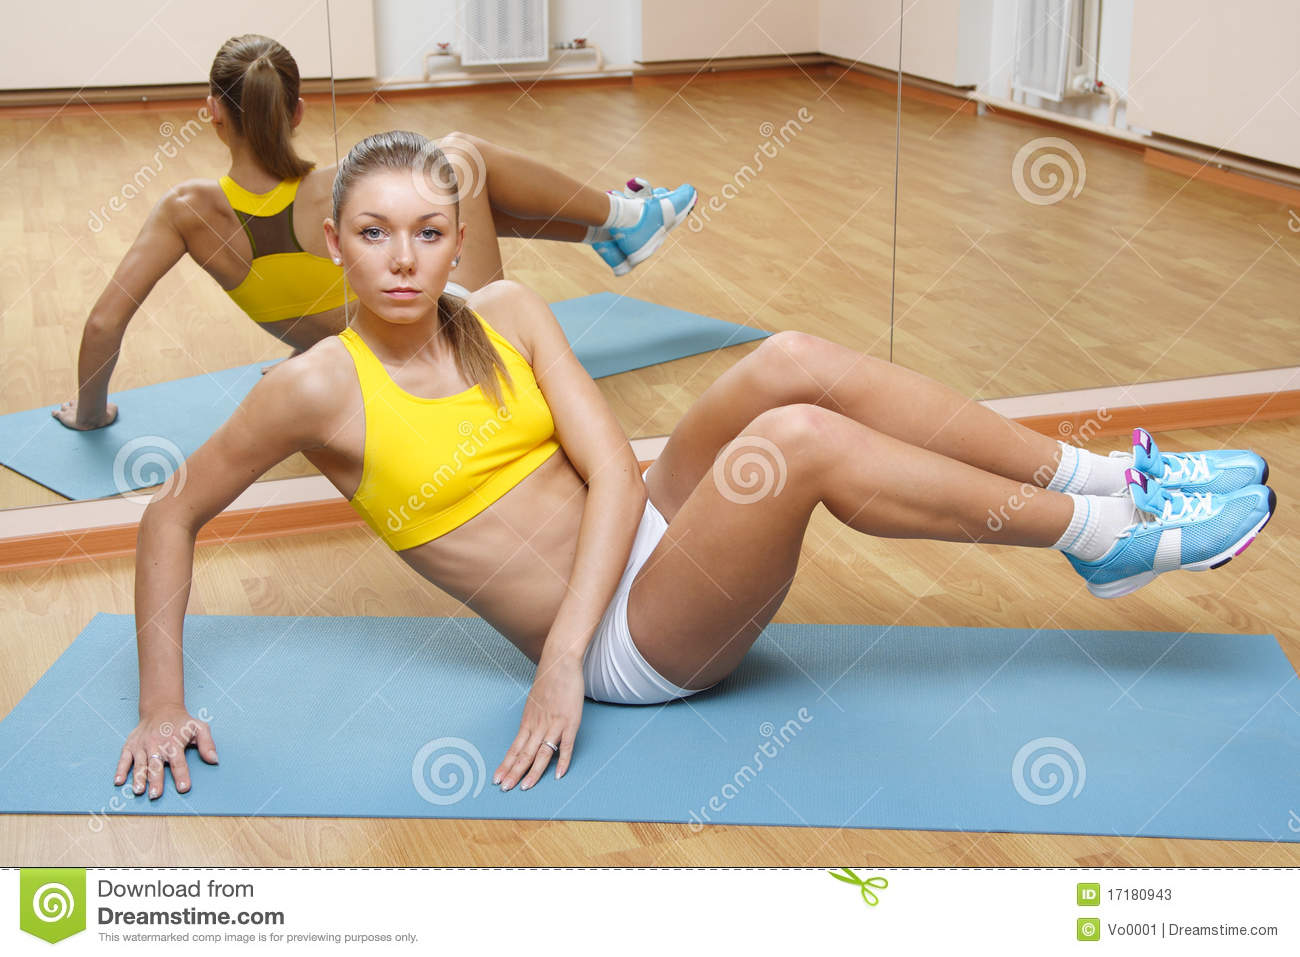 5d6543fa69d Girl In Shorts Do Exercise On Floor Mat In Gym Stock Image - Image ...